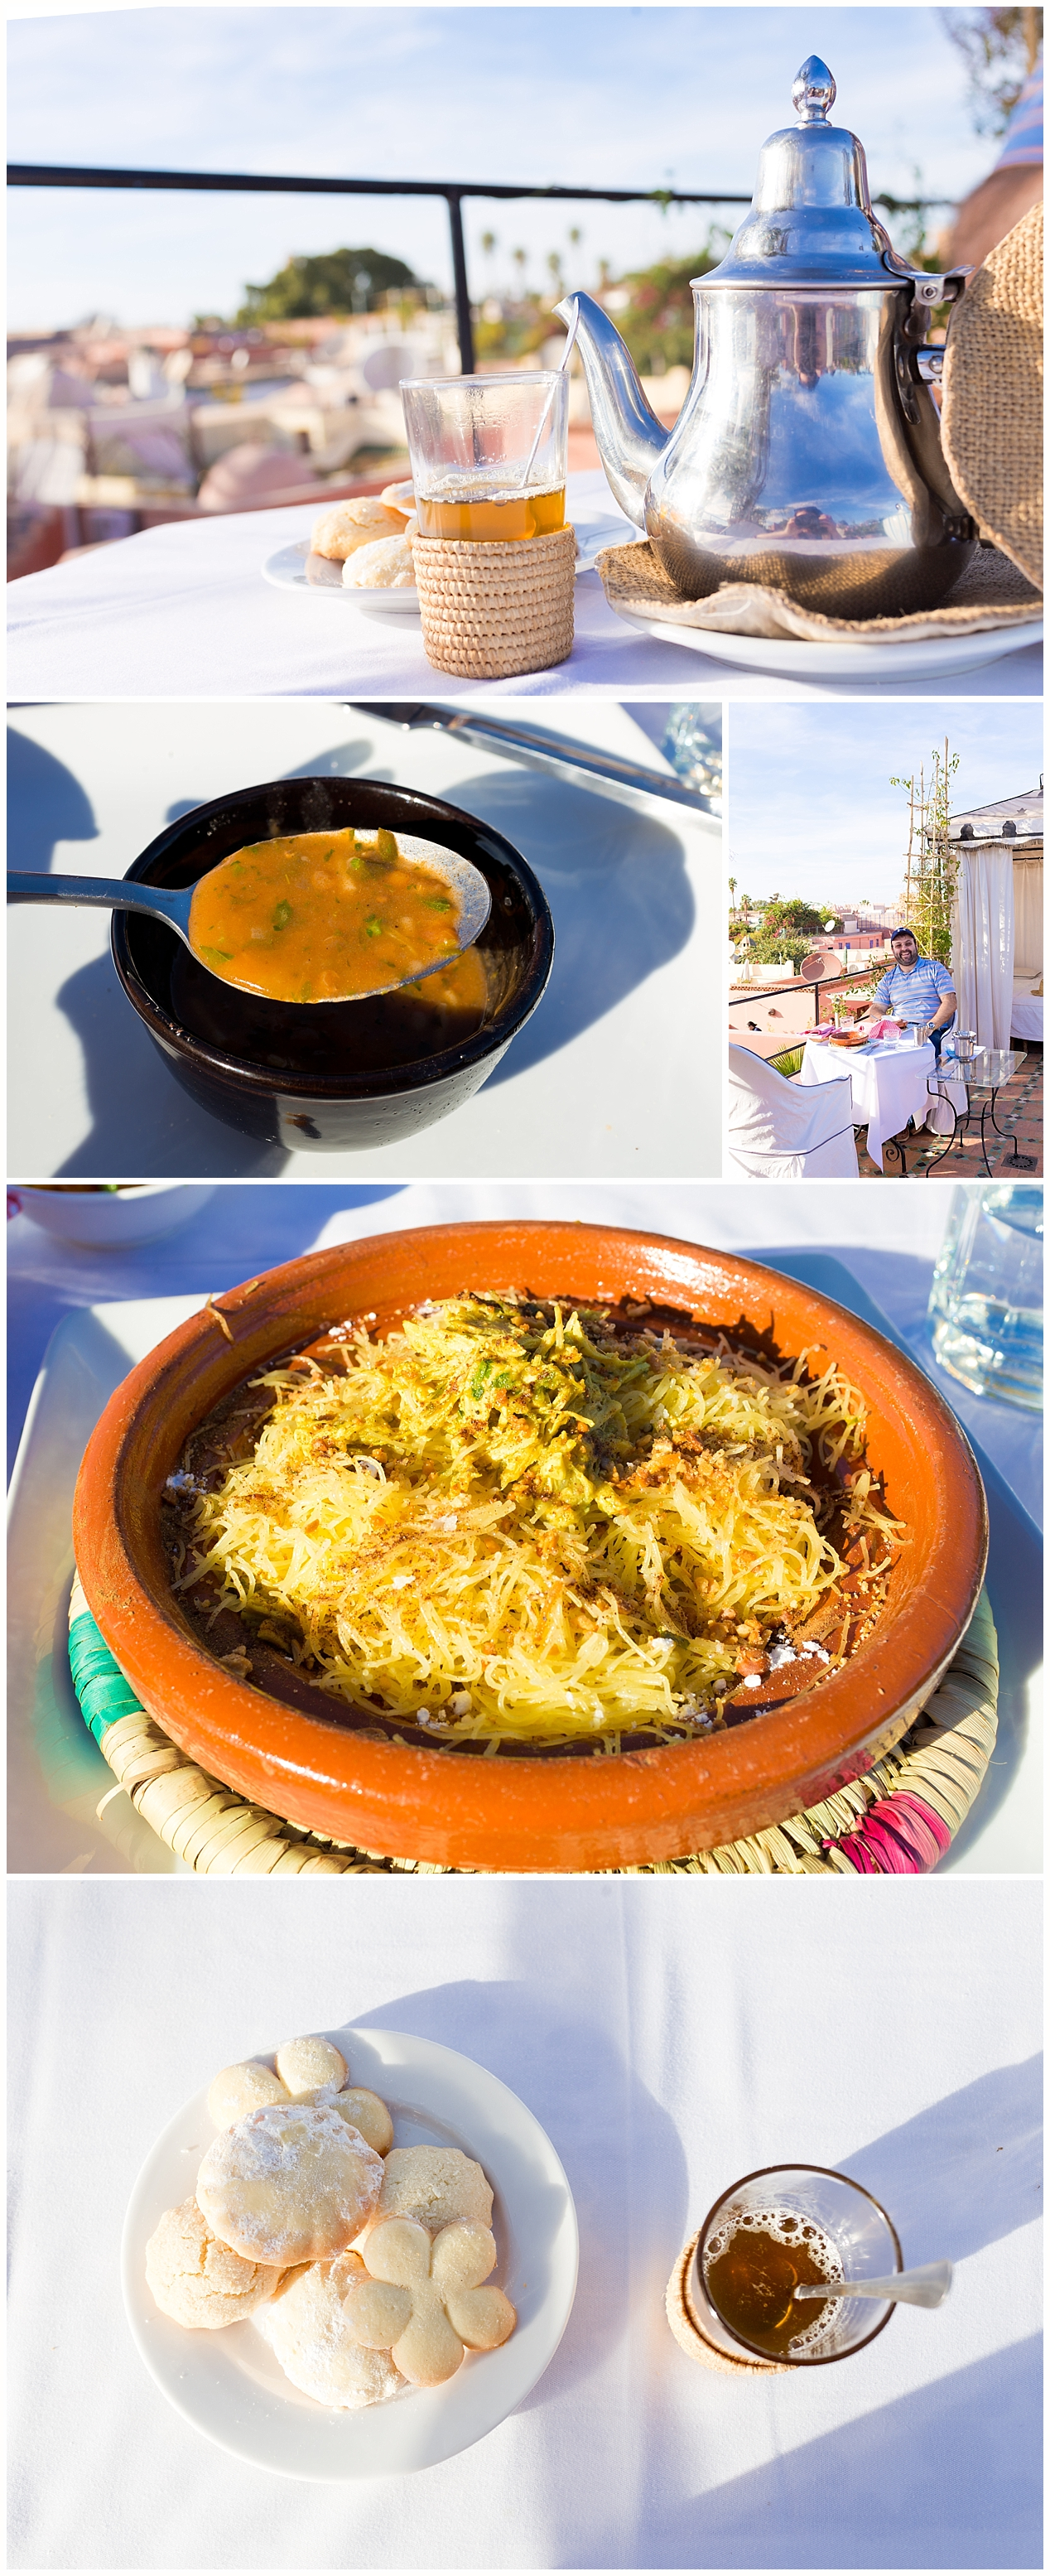 tea, soup, cookies, and chicken seffa lunch on rooftop at Riad Kaiss in Marrakech, Morocco